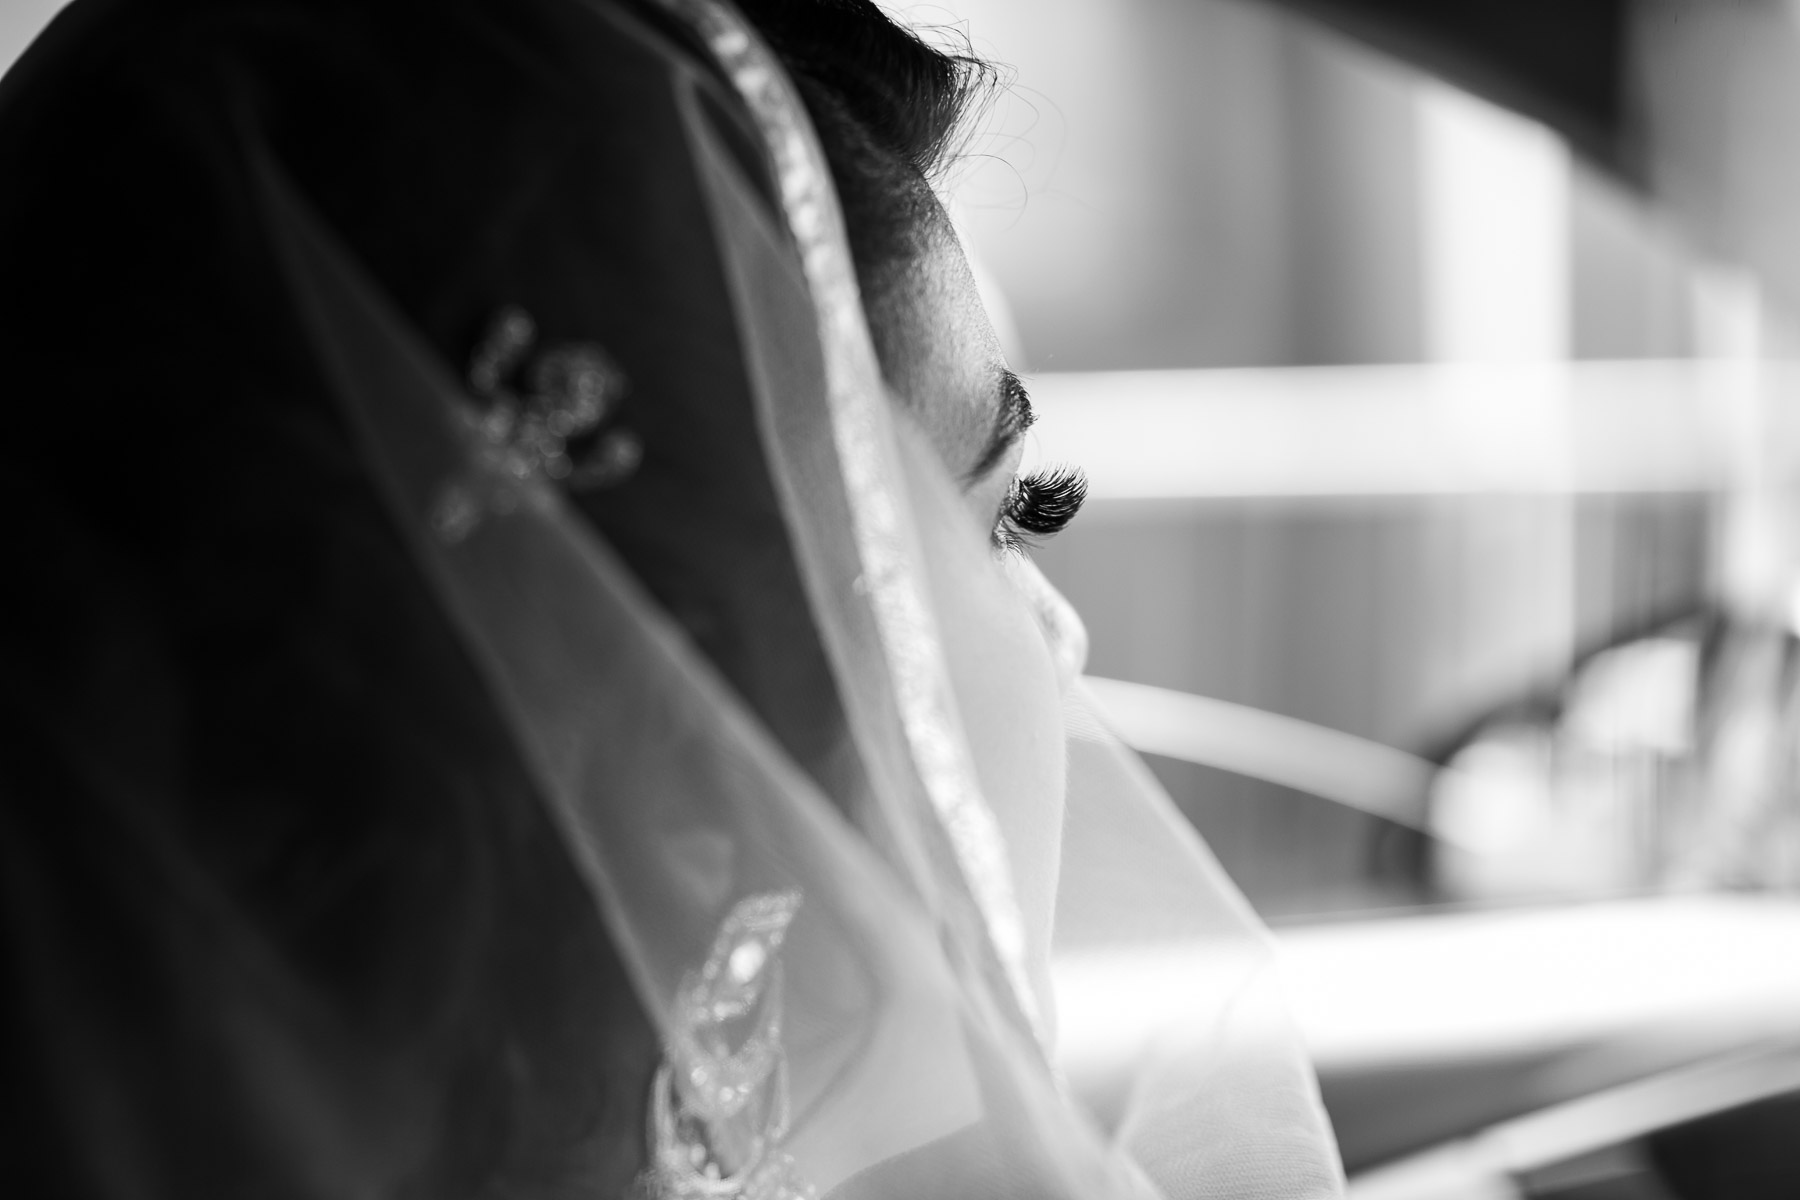 Asian bride on her way to wedding ceremony in the car